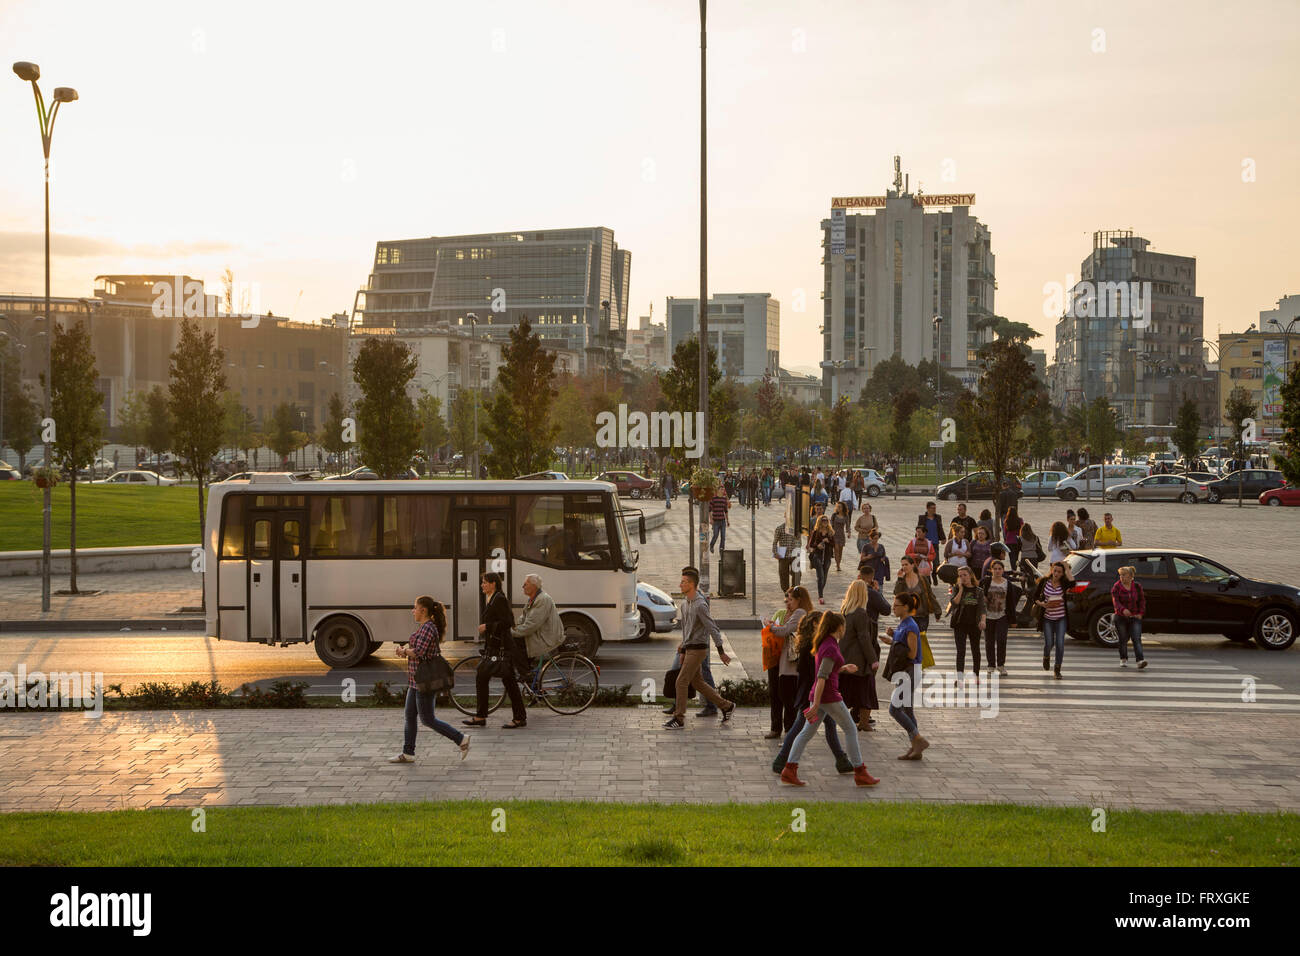 Pedestrians and Traffic near Skanderbeg Square at sunset, Tirana, Albania - Stock Image